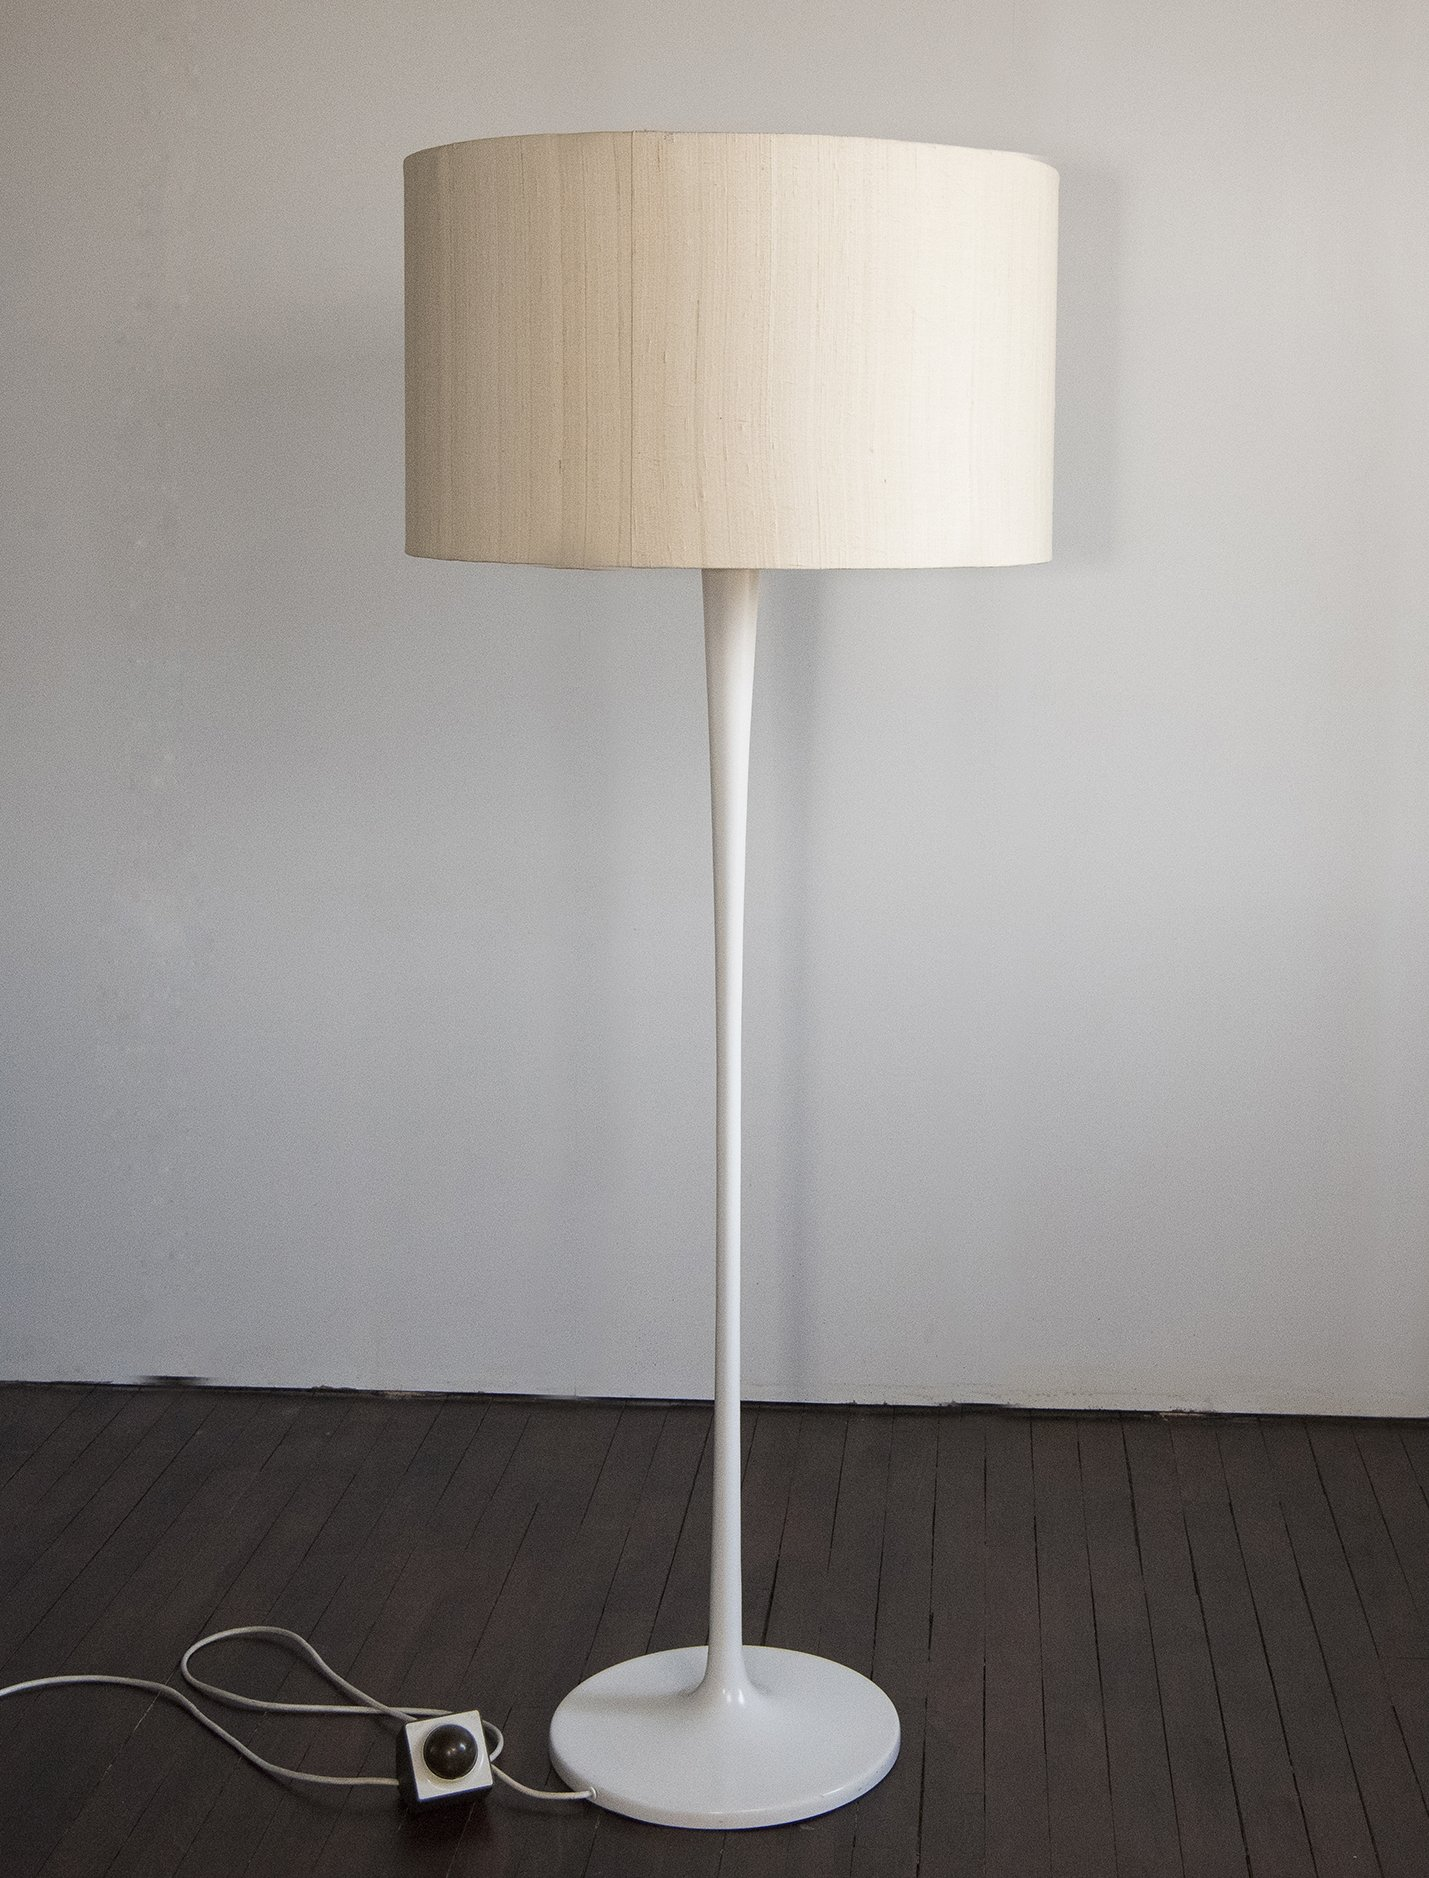 Tulip Floor Lamp By Staff, 1970s